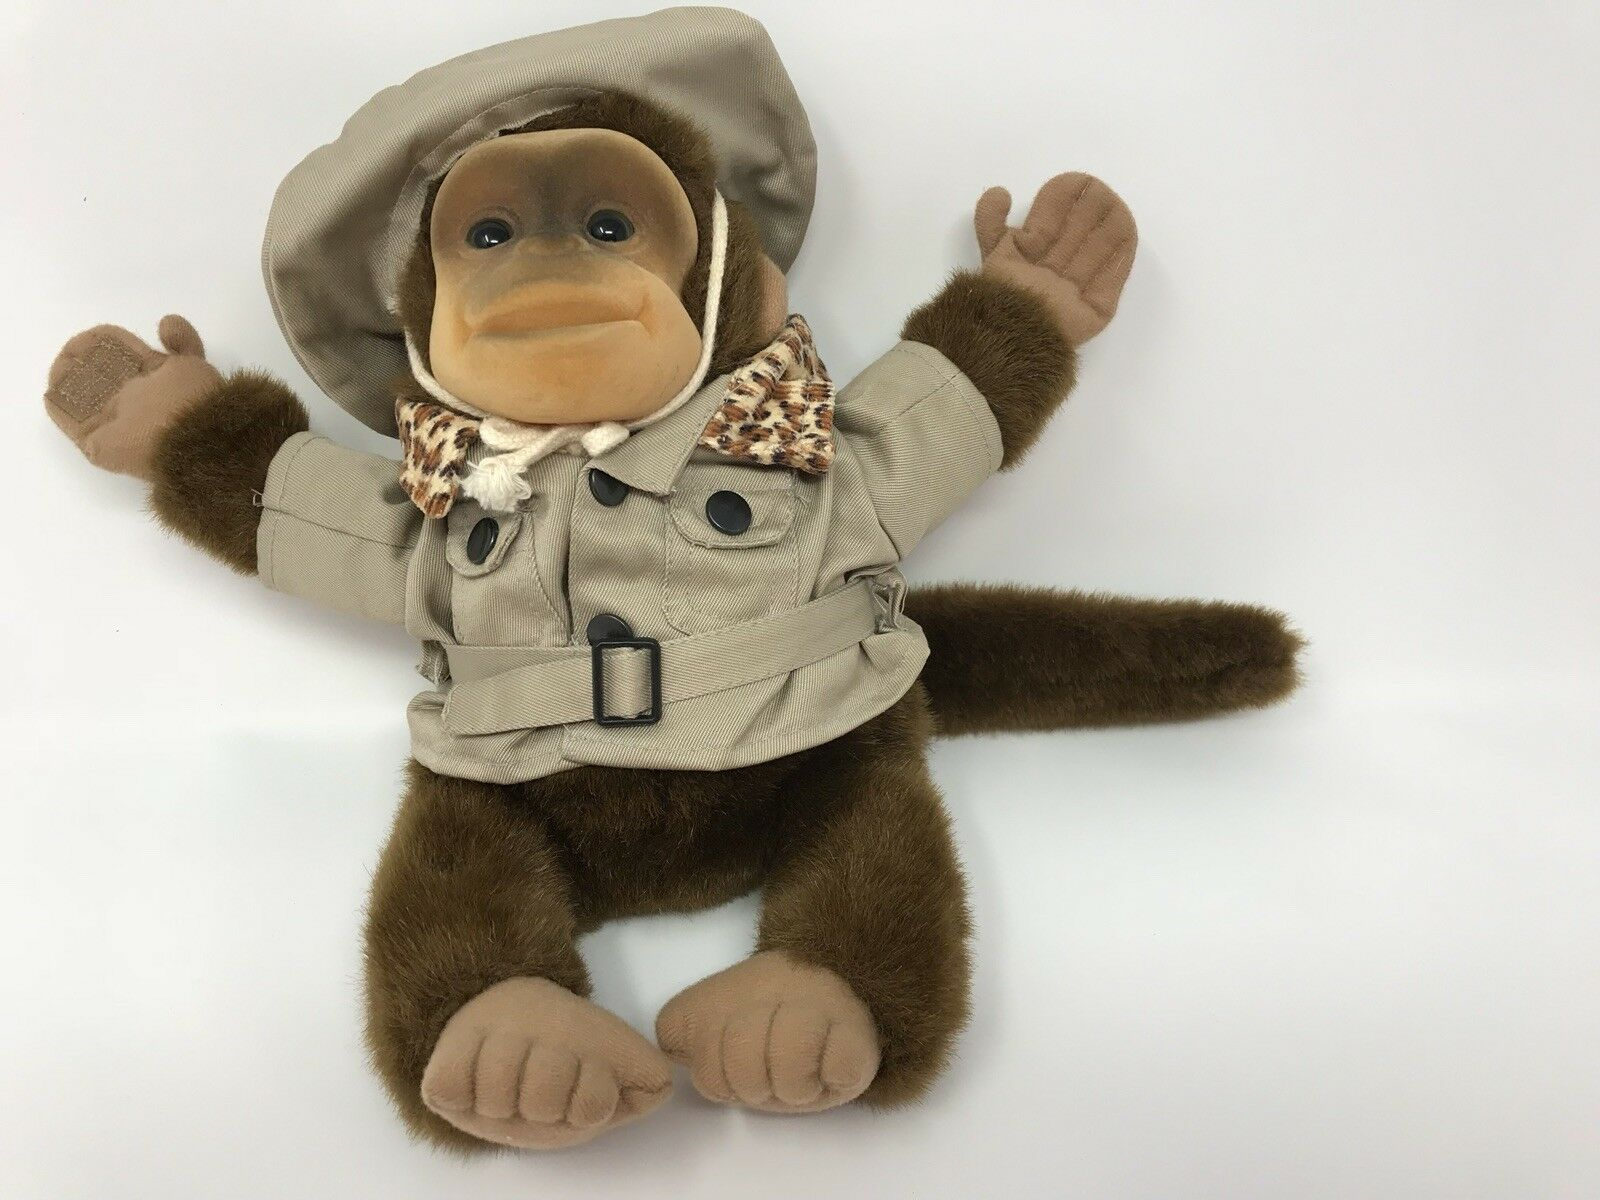 1992 Hosung Safari Monkey Hand Puppet Realistic Plush Toy with Squeaker Squeaks